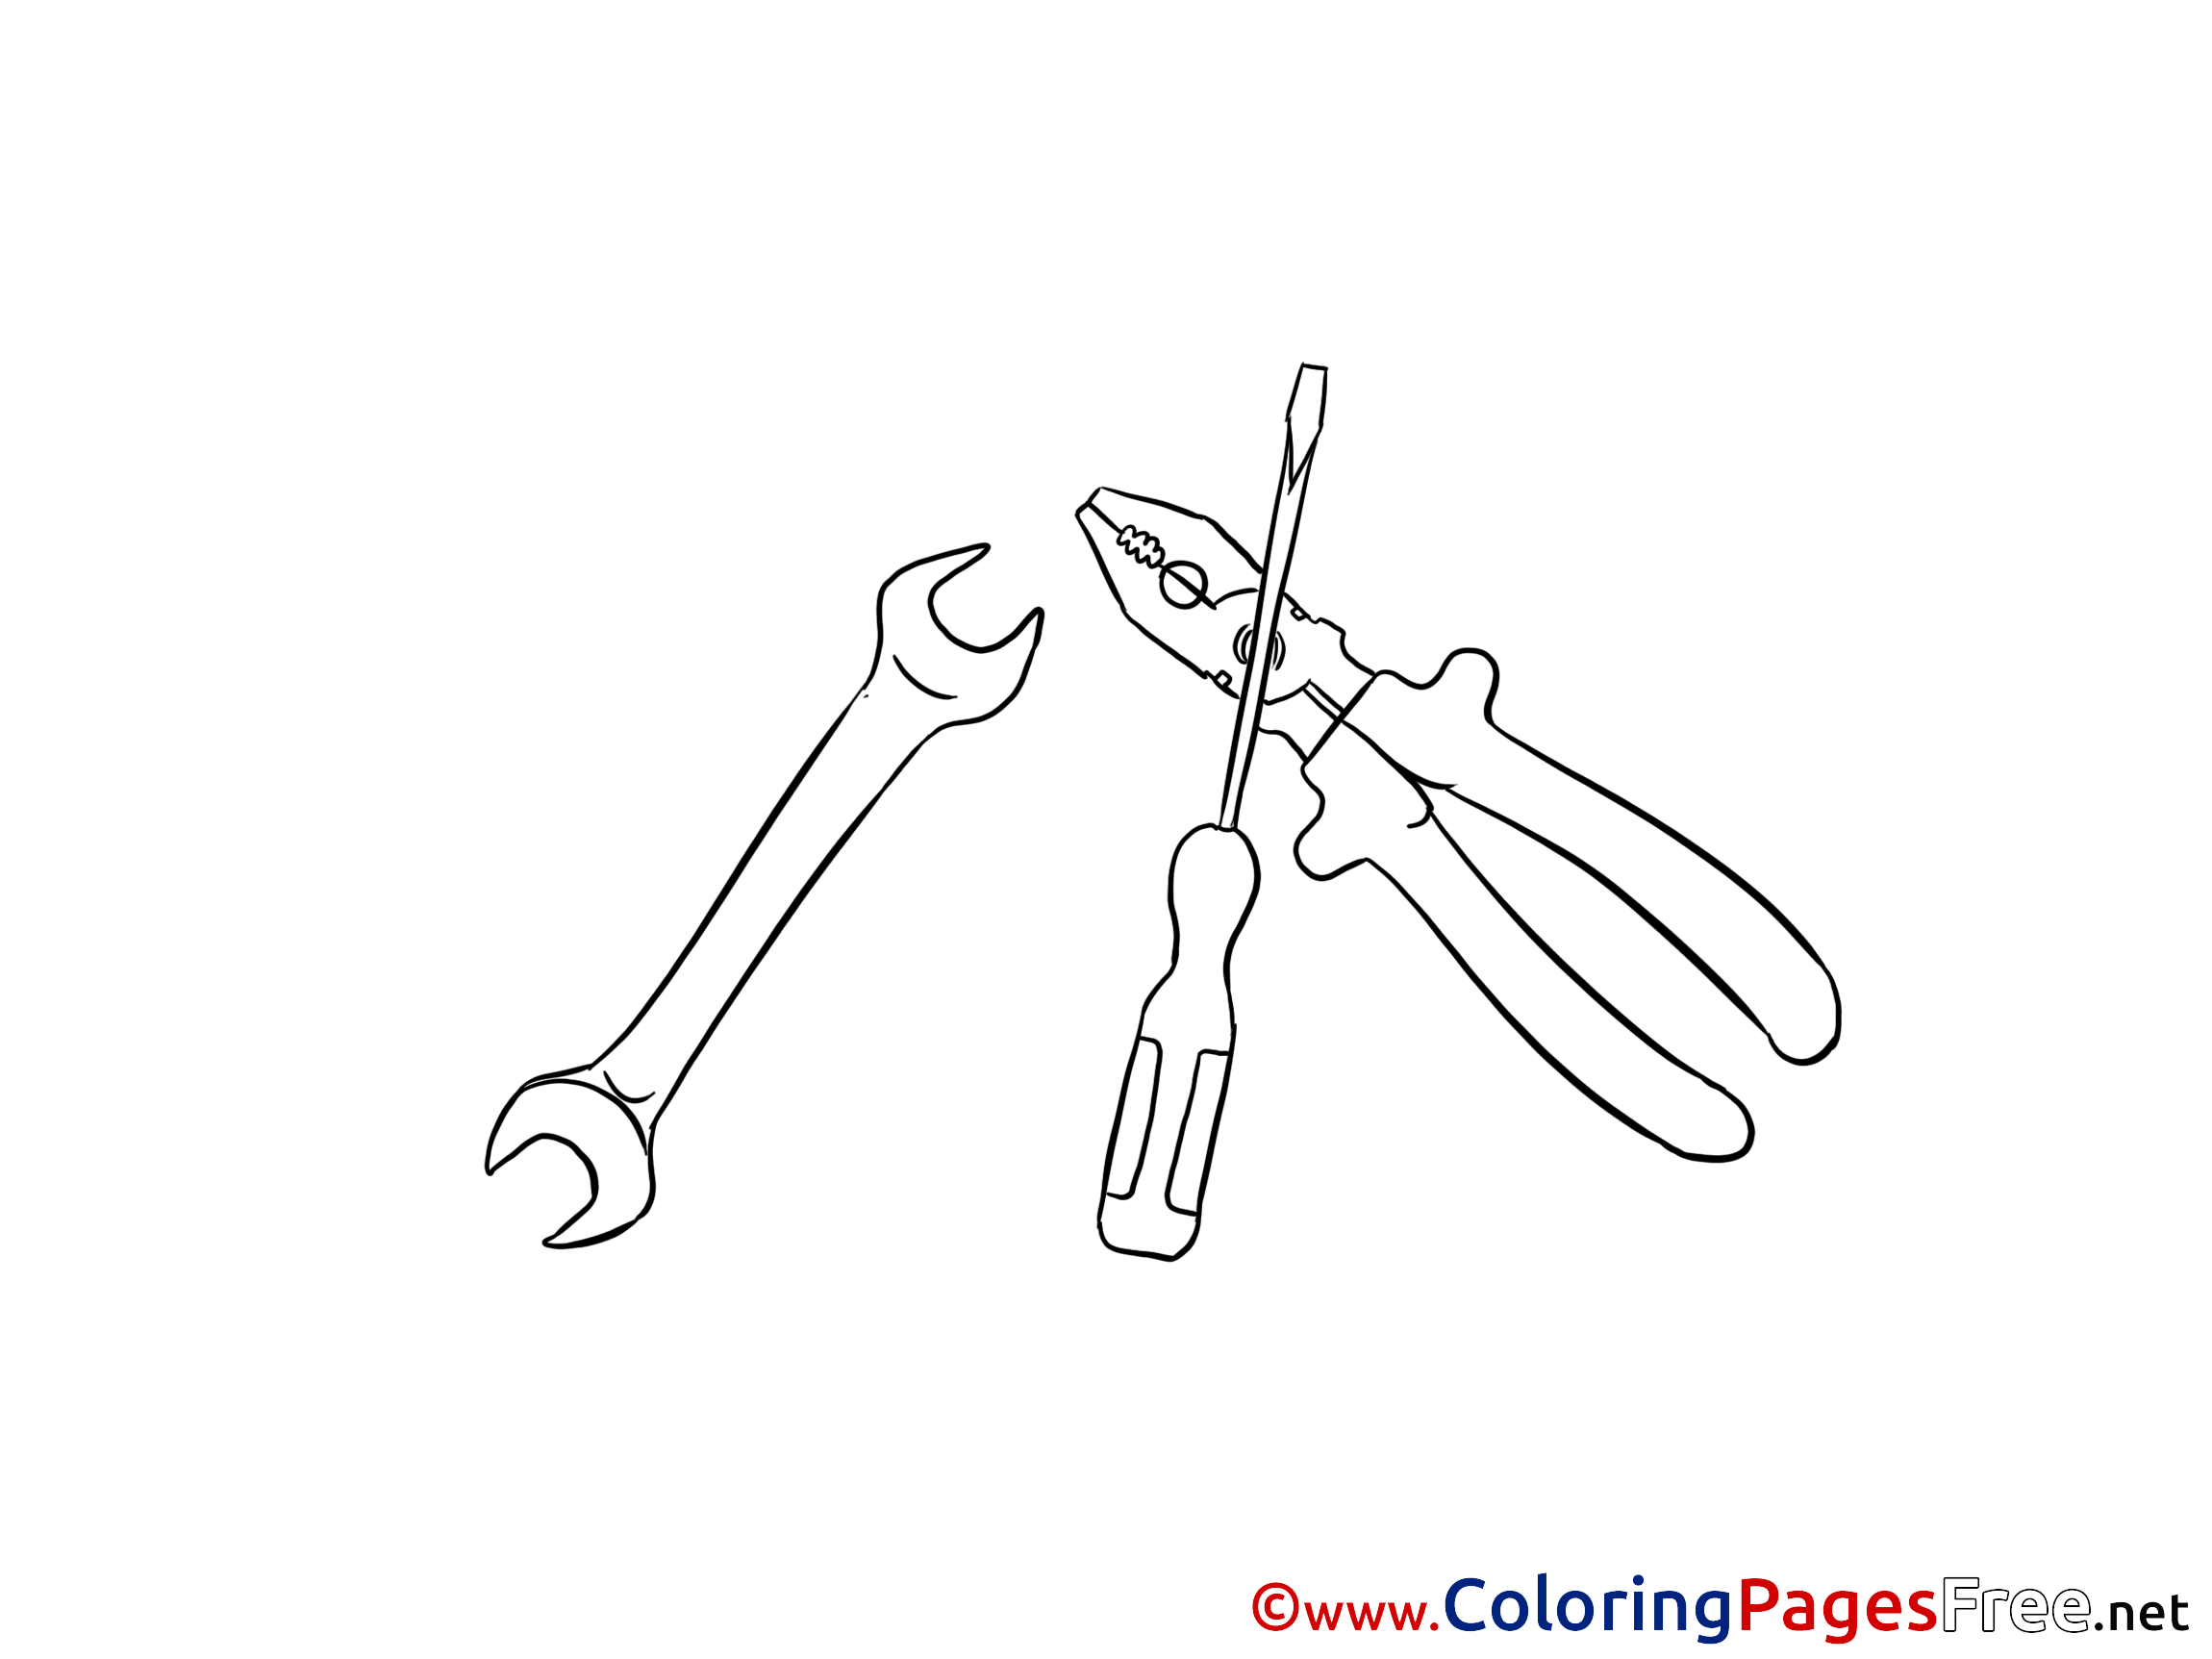 Free coloring pages instruments - Free Coloring Pages Instruments 40